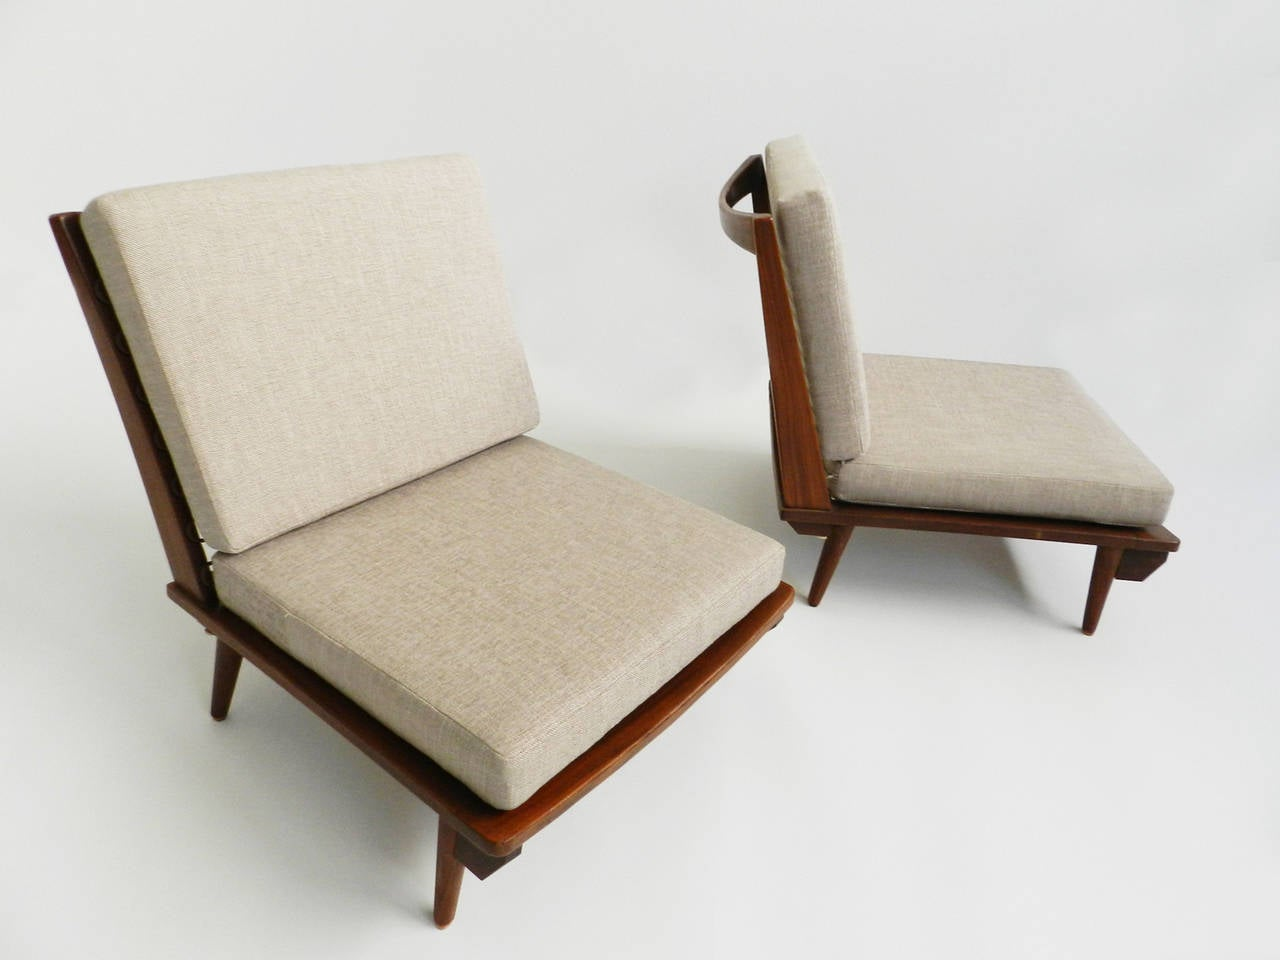 Minimal low lounge chairs in japanese style at 1stdibs for Japanese furniture